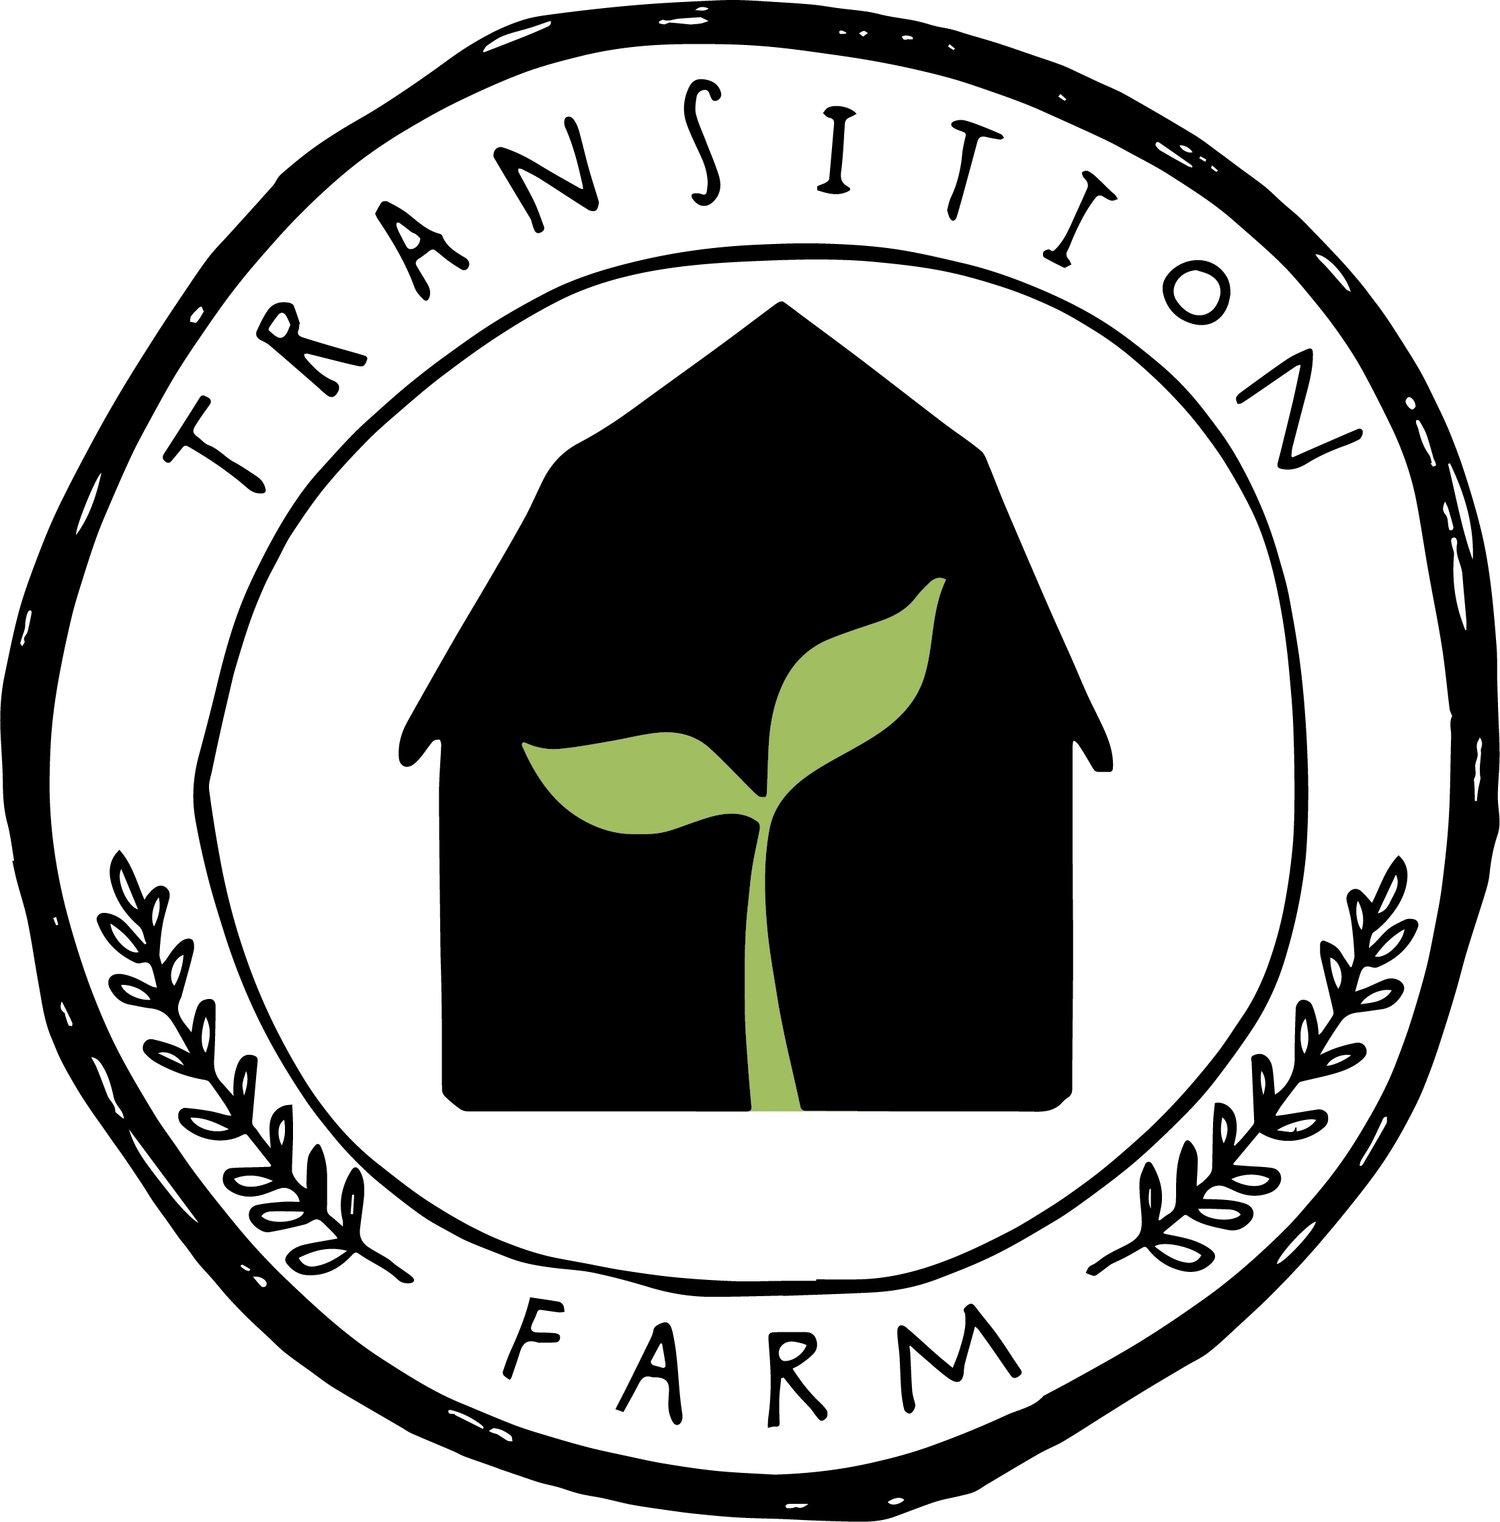 Transition Farm